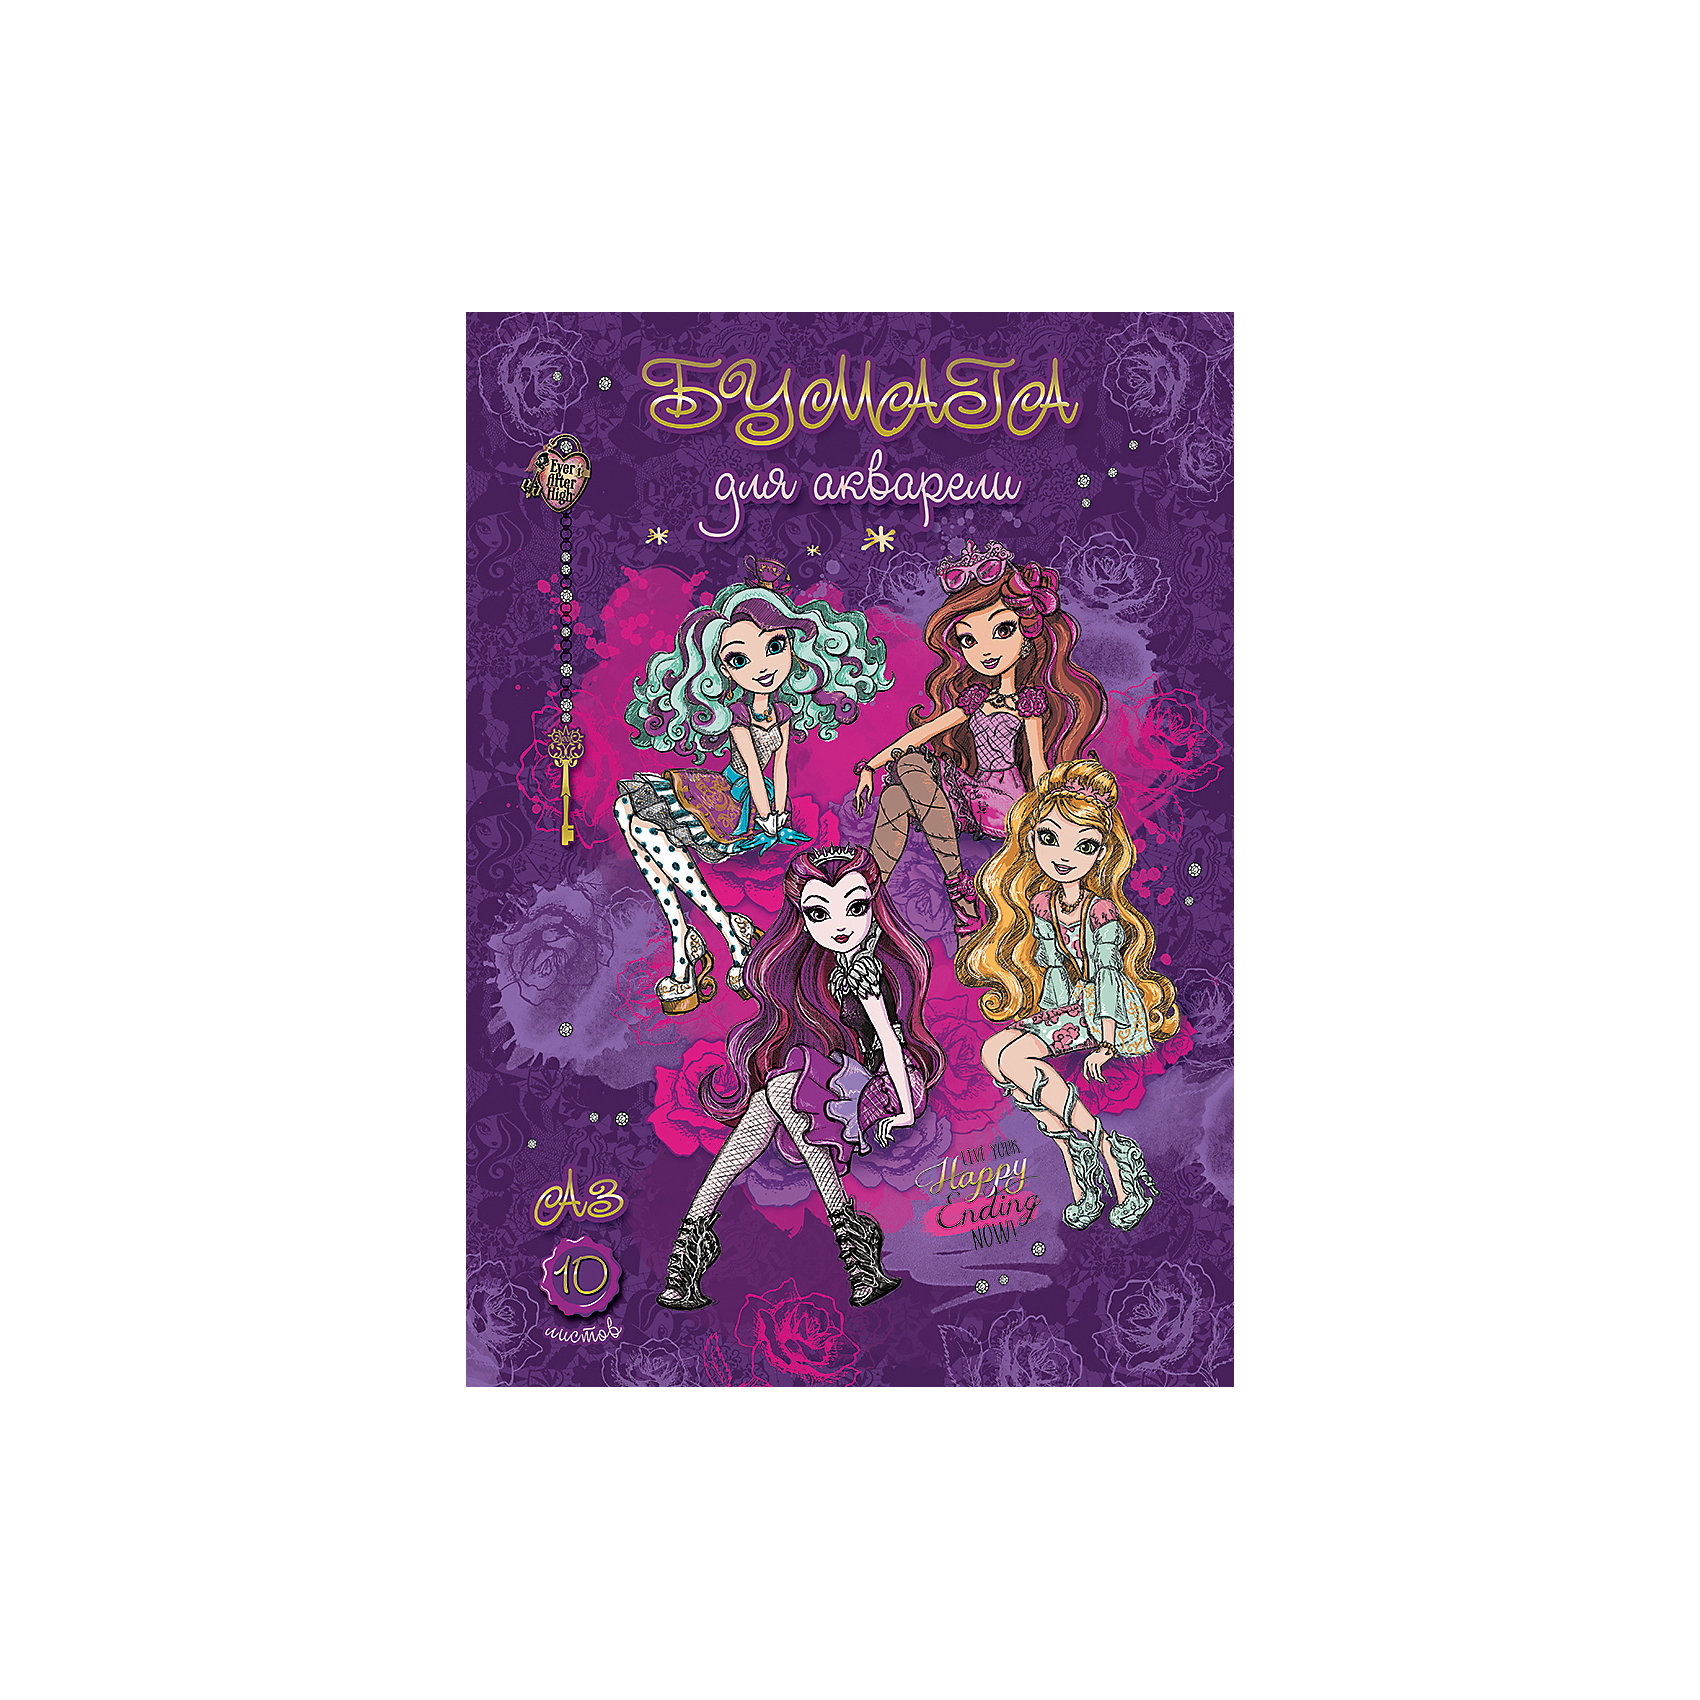 Бумага для акварели, А3, 10 л., Ever After High